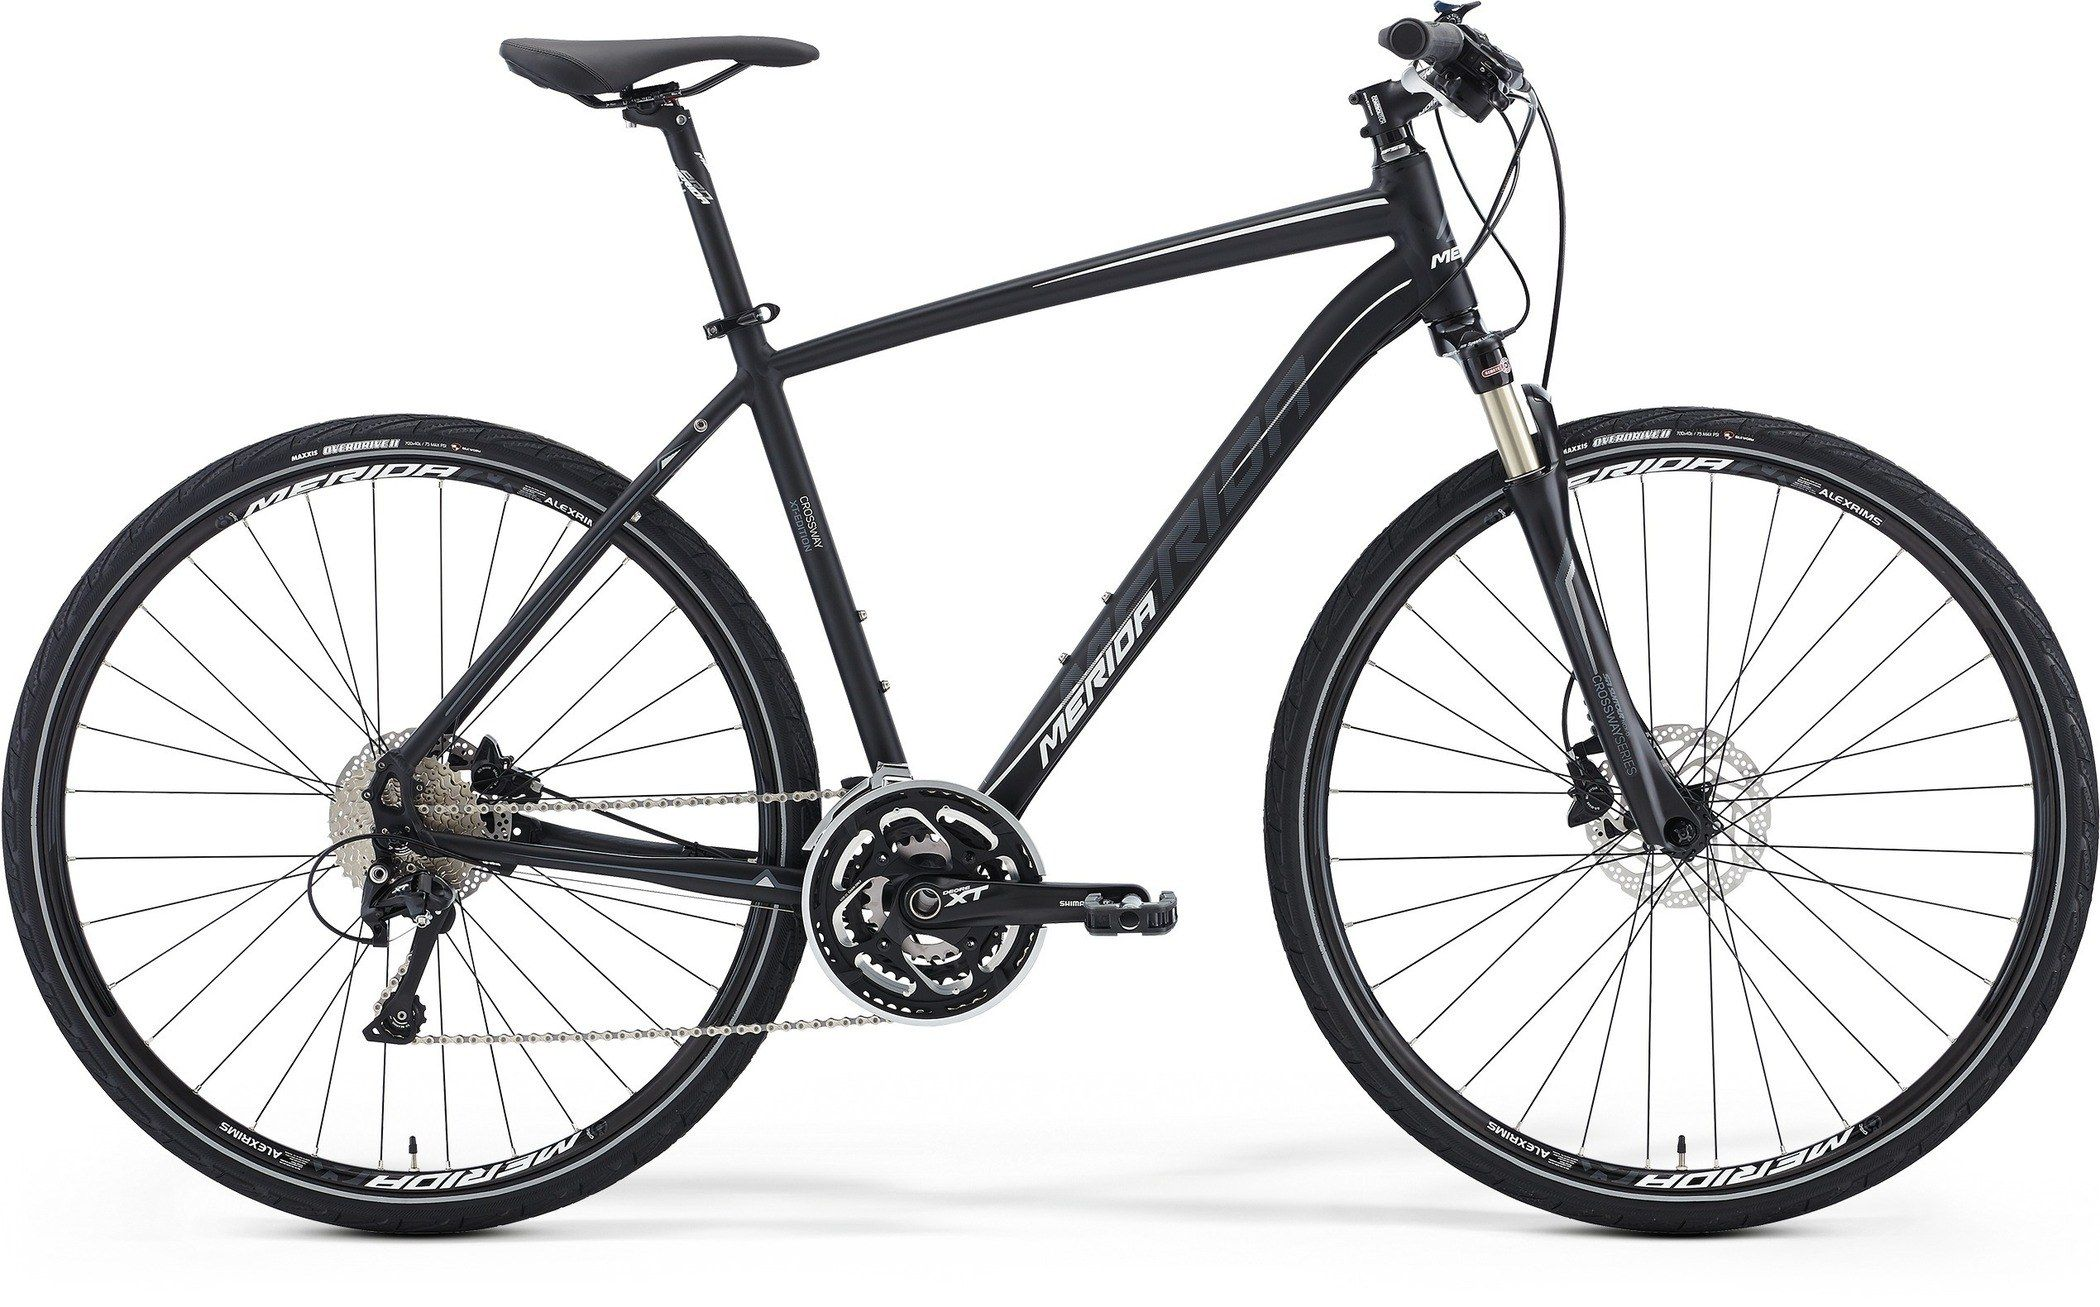 Crossway Xt Edition Trekking City Merida Bikes Nederland